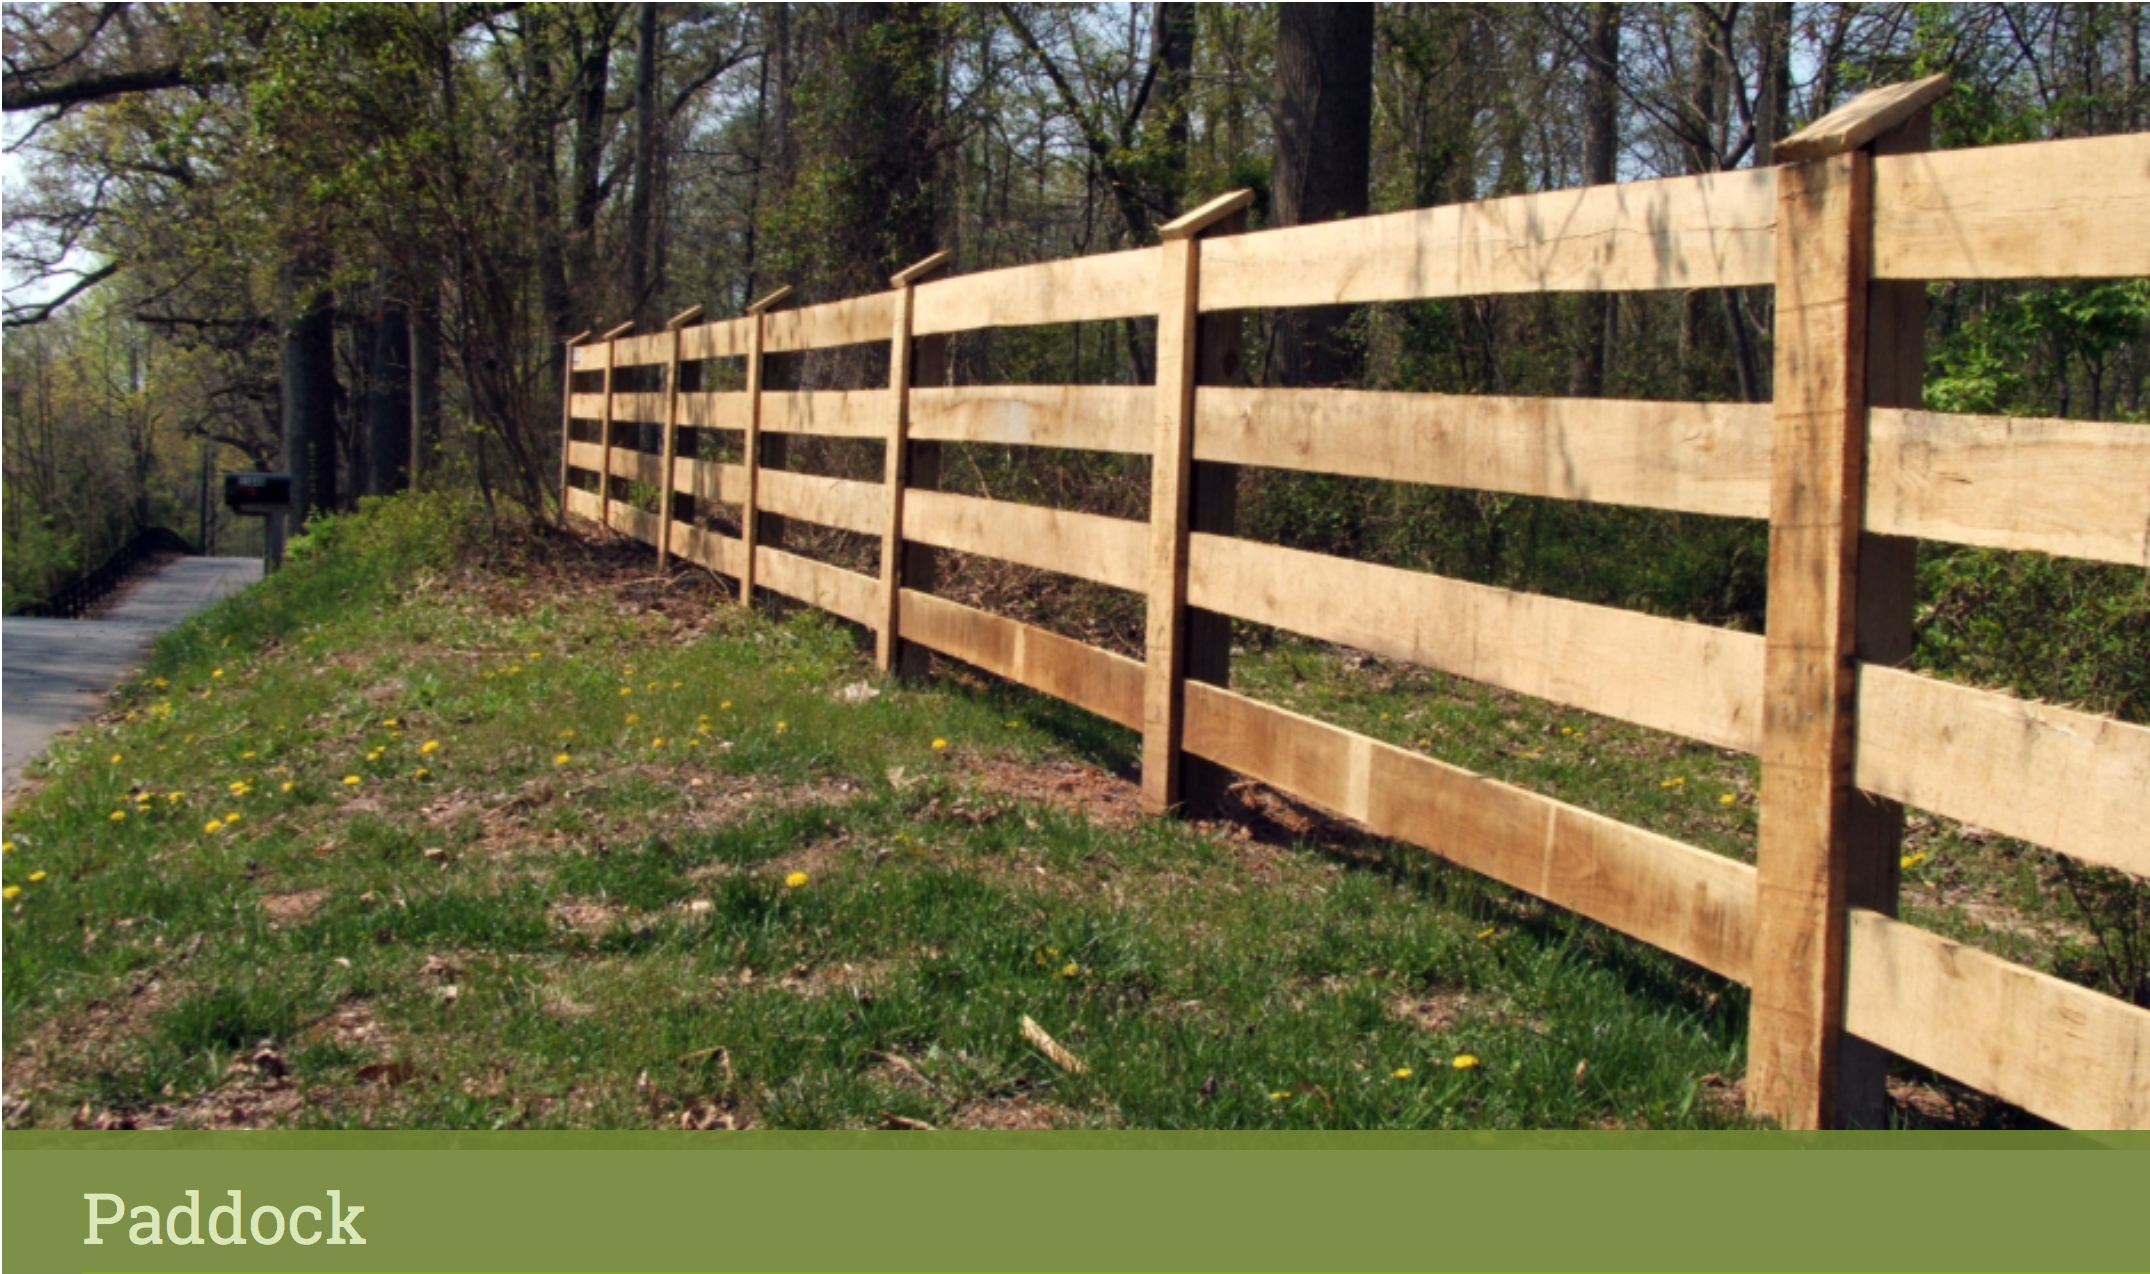 Https Www Longfence Com Residential Fence Wood Paddock With Images Wood Fence Paddock